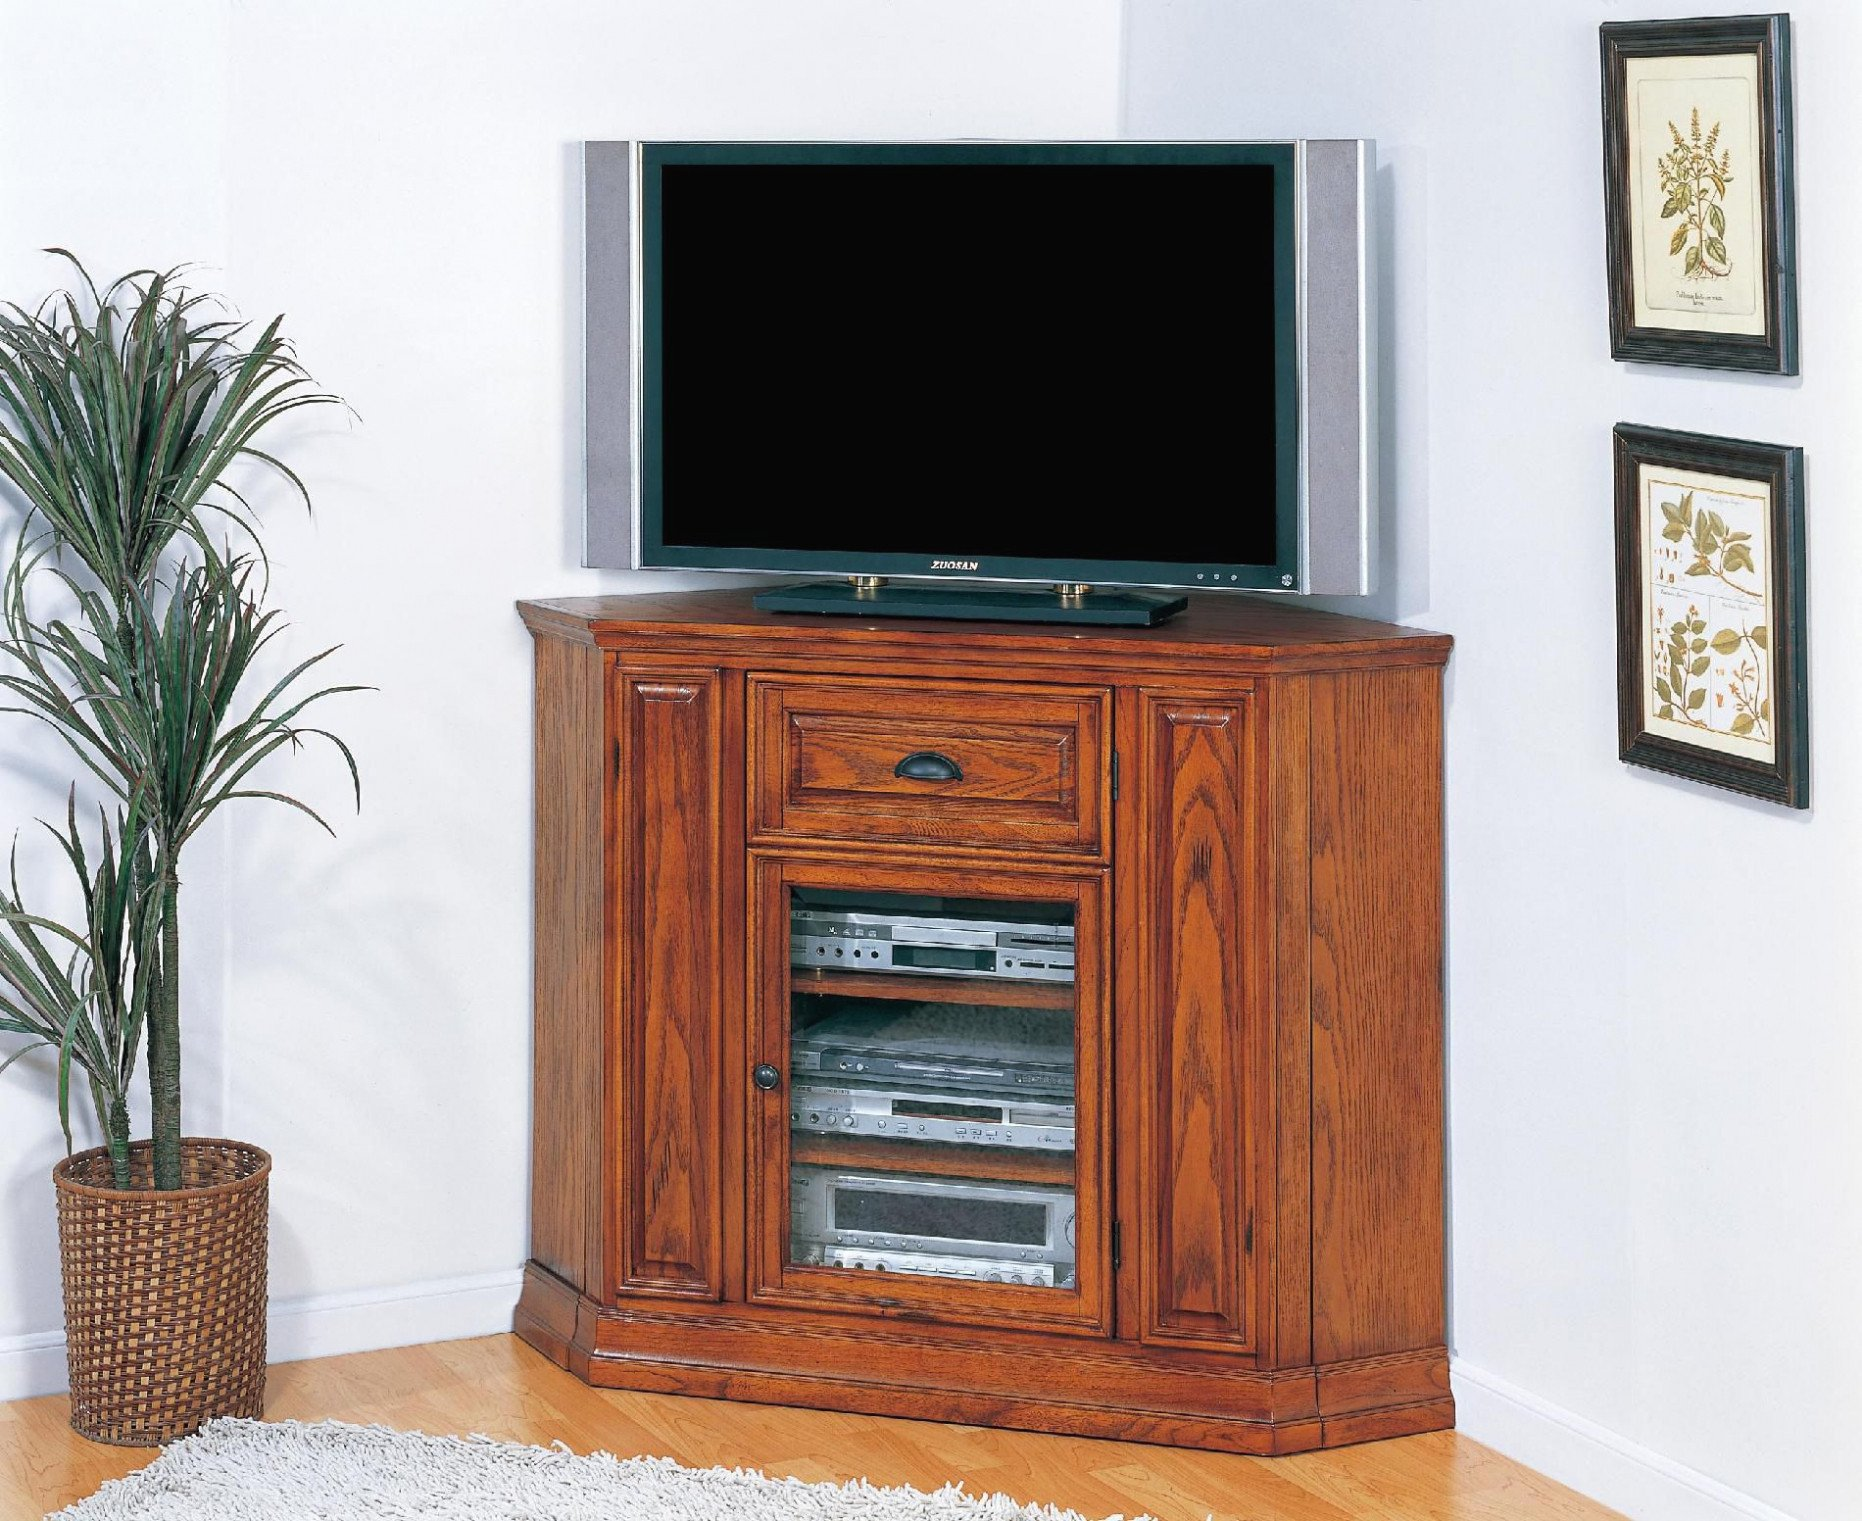 Tall Tv Stands for Bedroom Beautiful Living Room Better Tall Tv Stands for Bedroom Beautiful